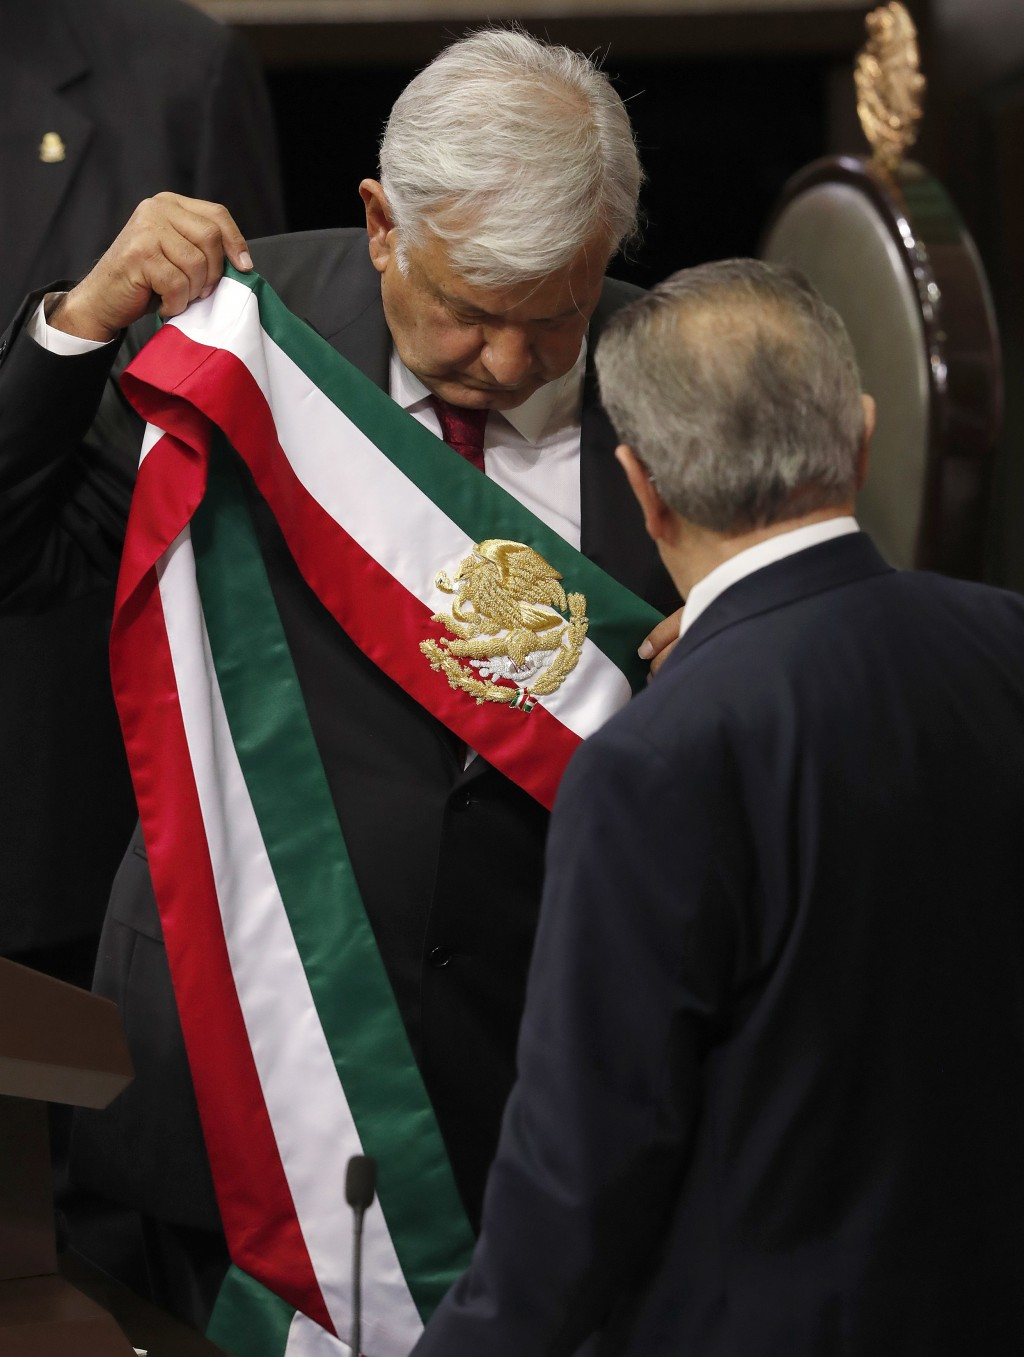 Mexico's new President Andres Manuel Lopez Obrador holds the presidential sash after taking the oath of office at the National Congress in Mexico City